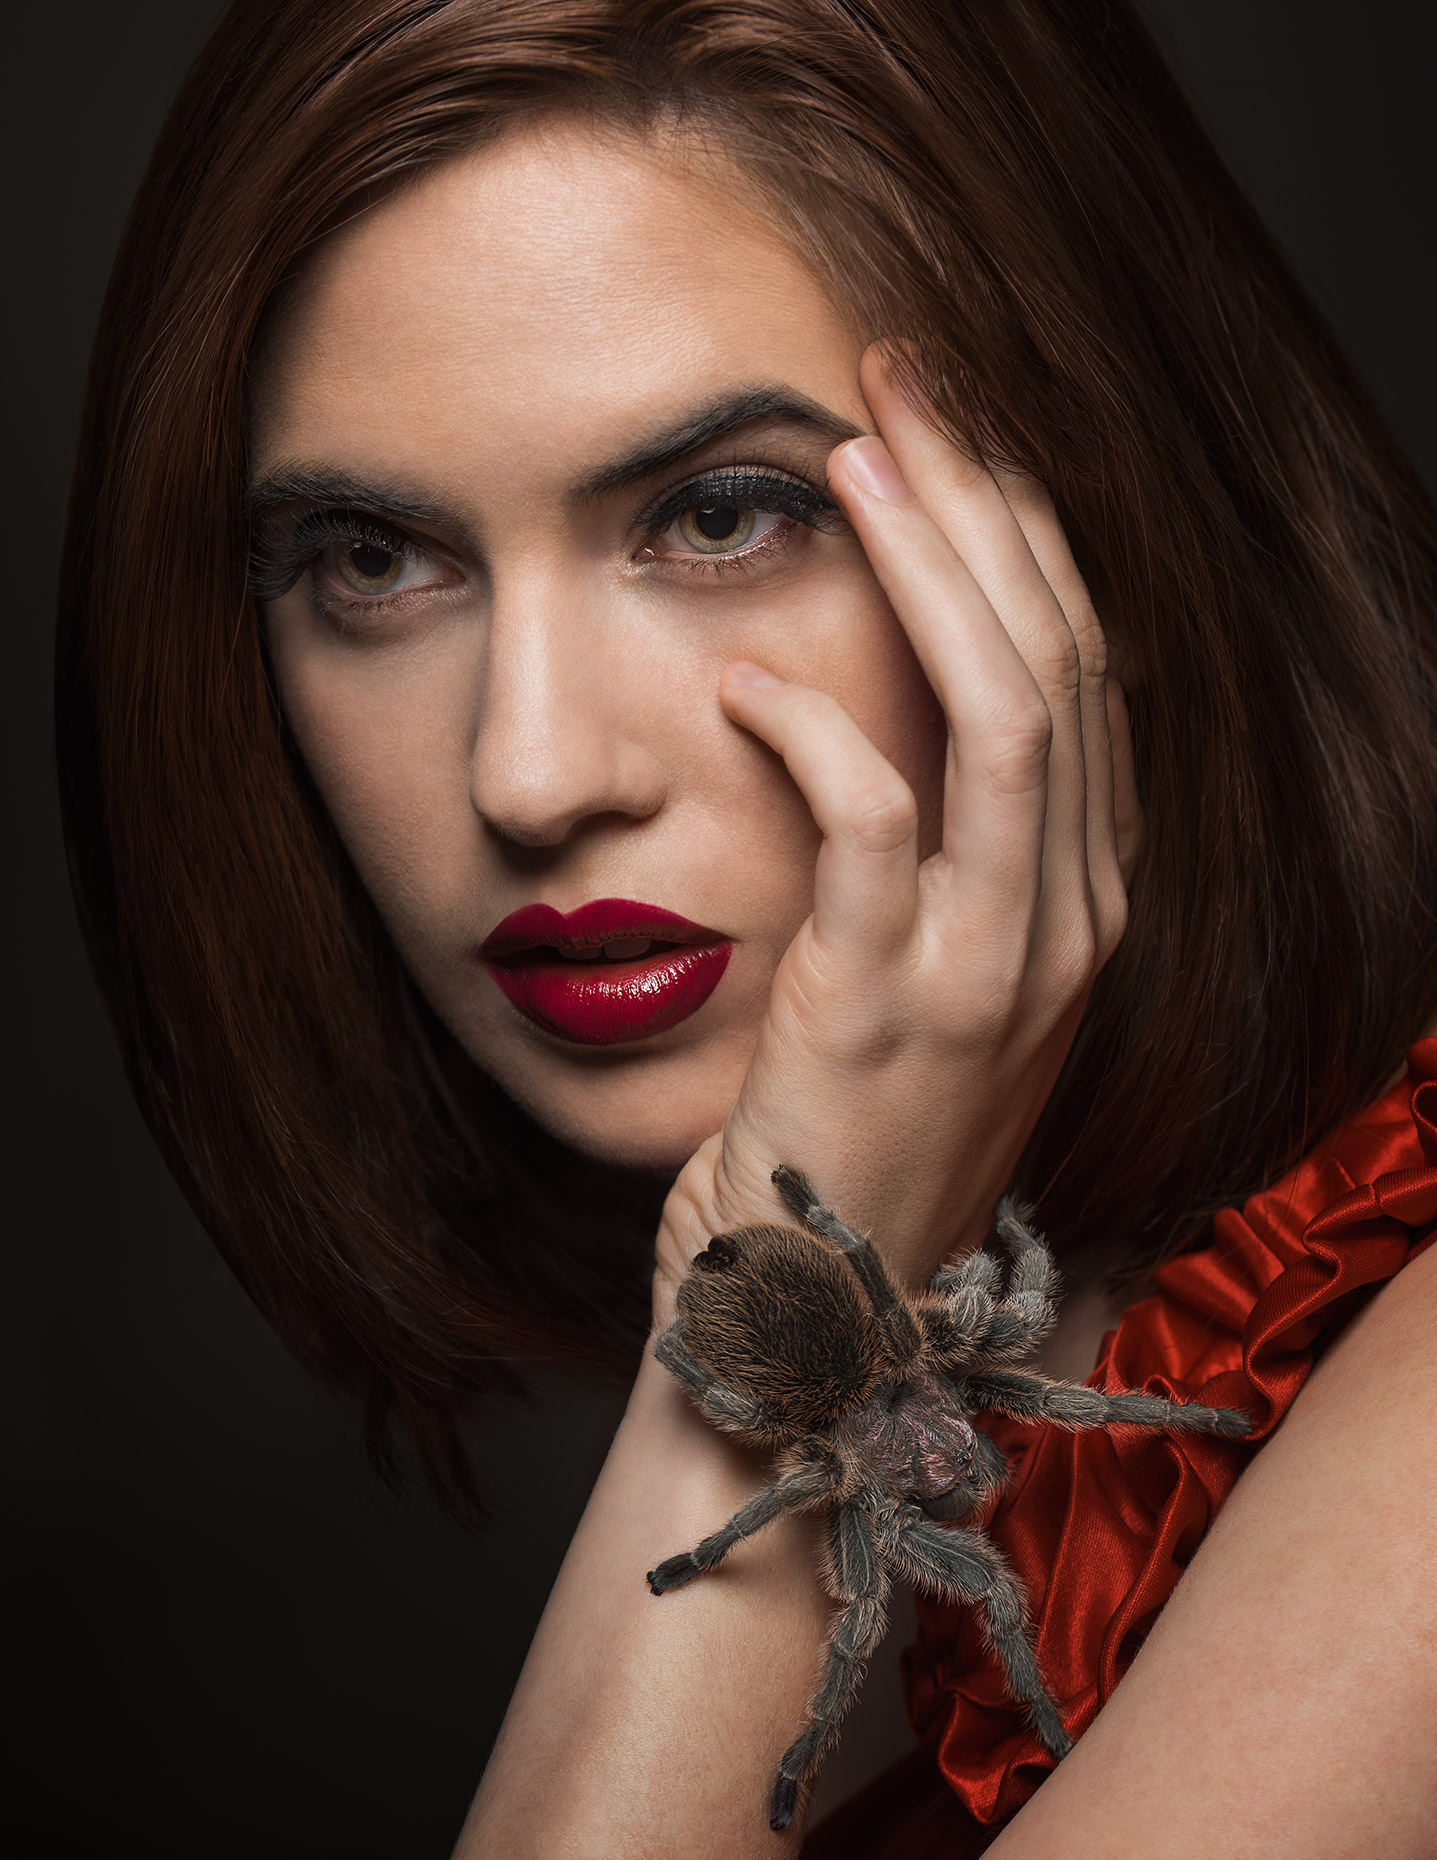 elle_spider_closeup